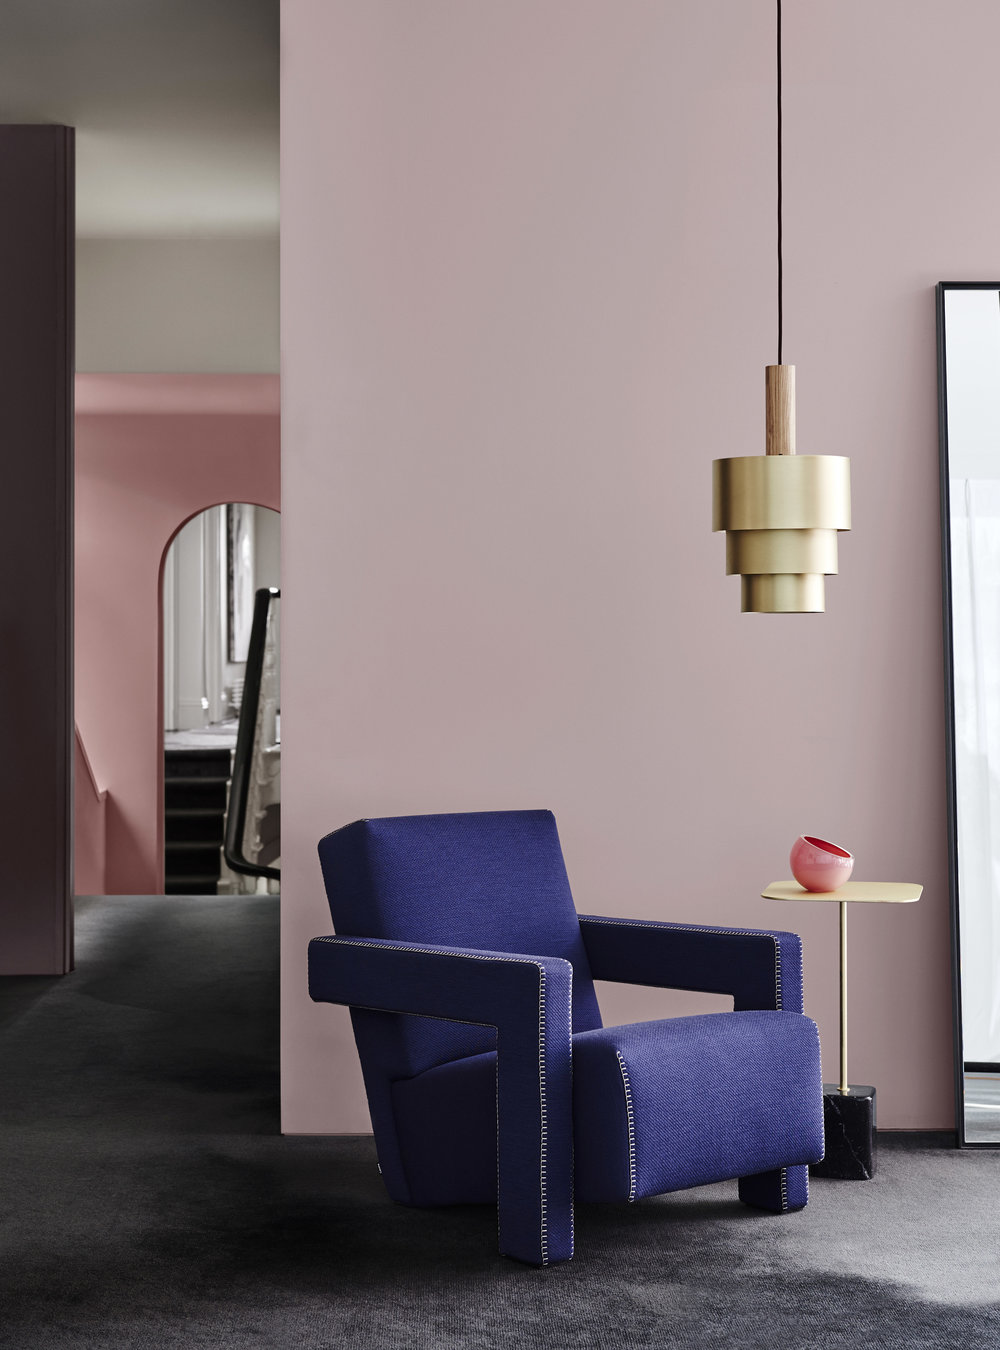 Dulux Colour Trends 2018  – Reflect Palette.Front wall in Dulux Smokey Quartz,Left wall in Dulux Bruised Burgundy and rear wall Dulux Terra Rose